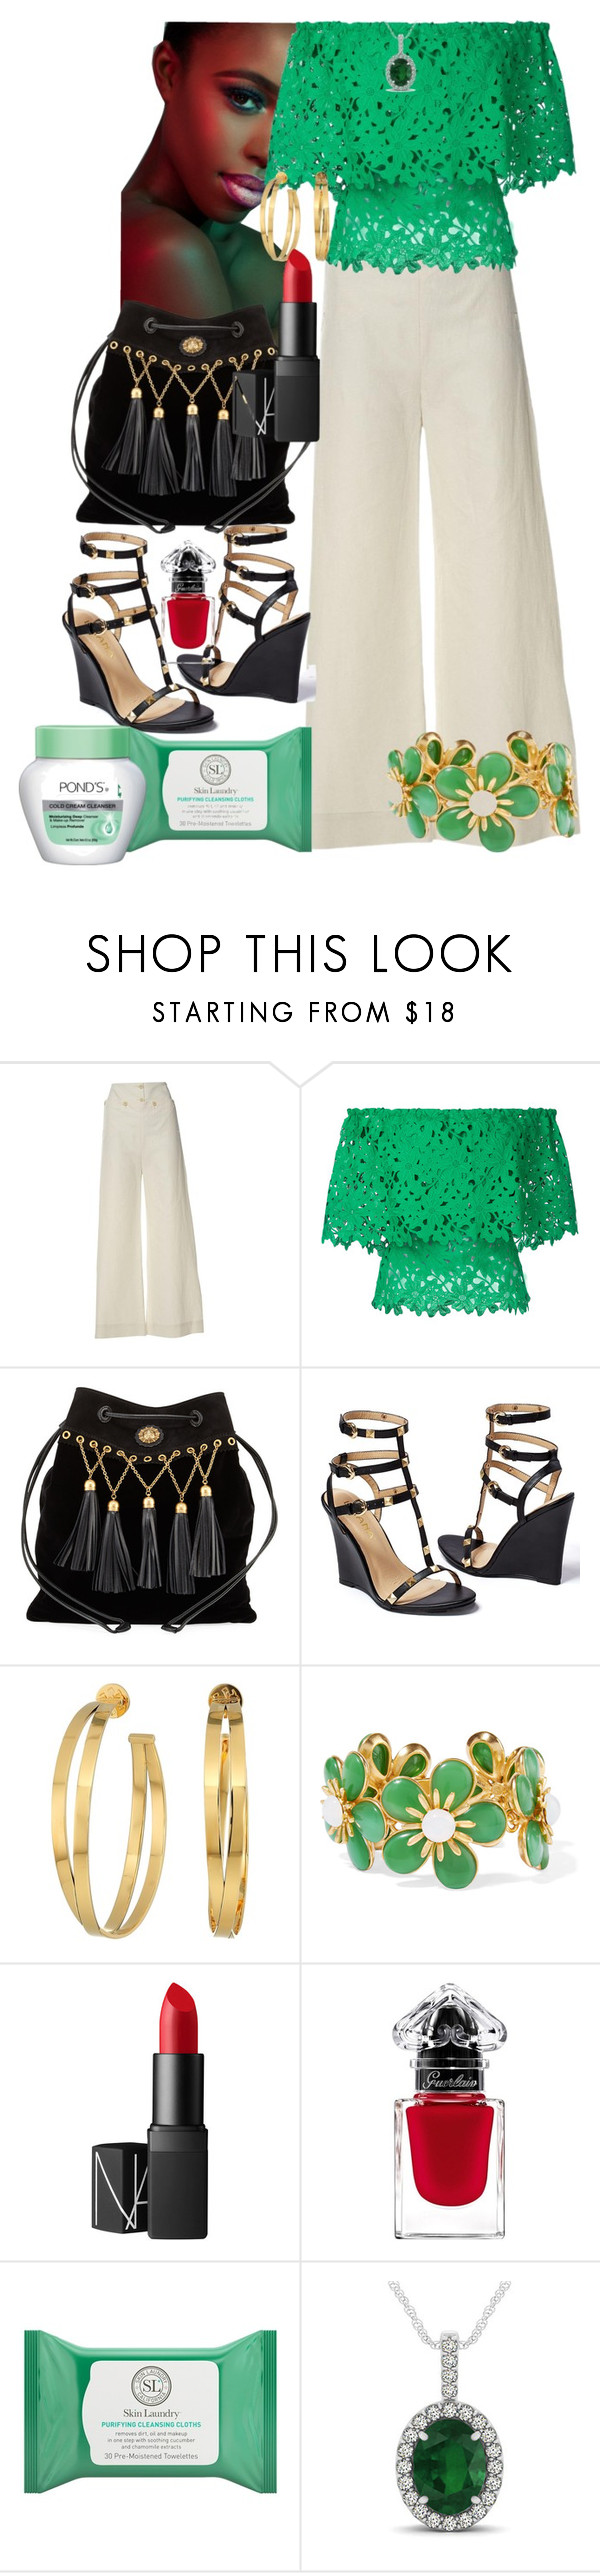 """Summer Fest"" by shirley-de-gannes ❤ liked on Polyvore featuring STELLA McCARTNEY, Bambah, Miu Miu, Venus, Tory Burch, Ben-Amun, NARS Cosmetics, Skin Laundry and Allurez"